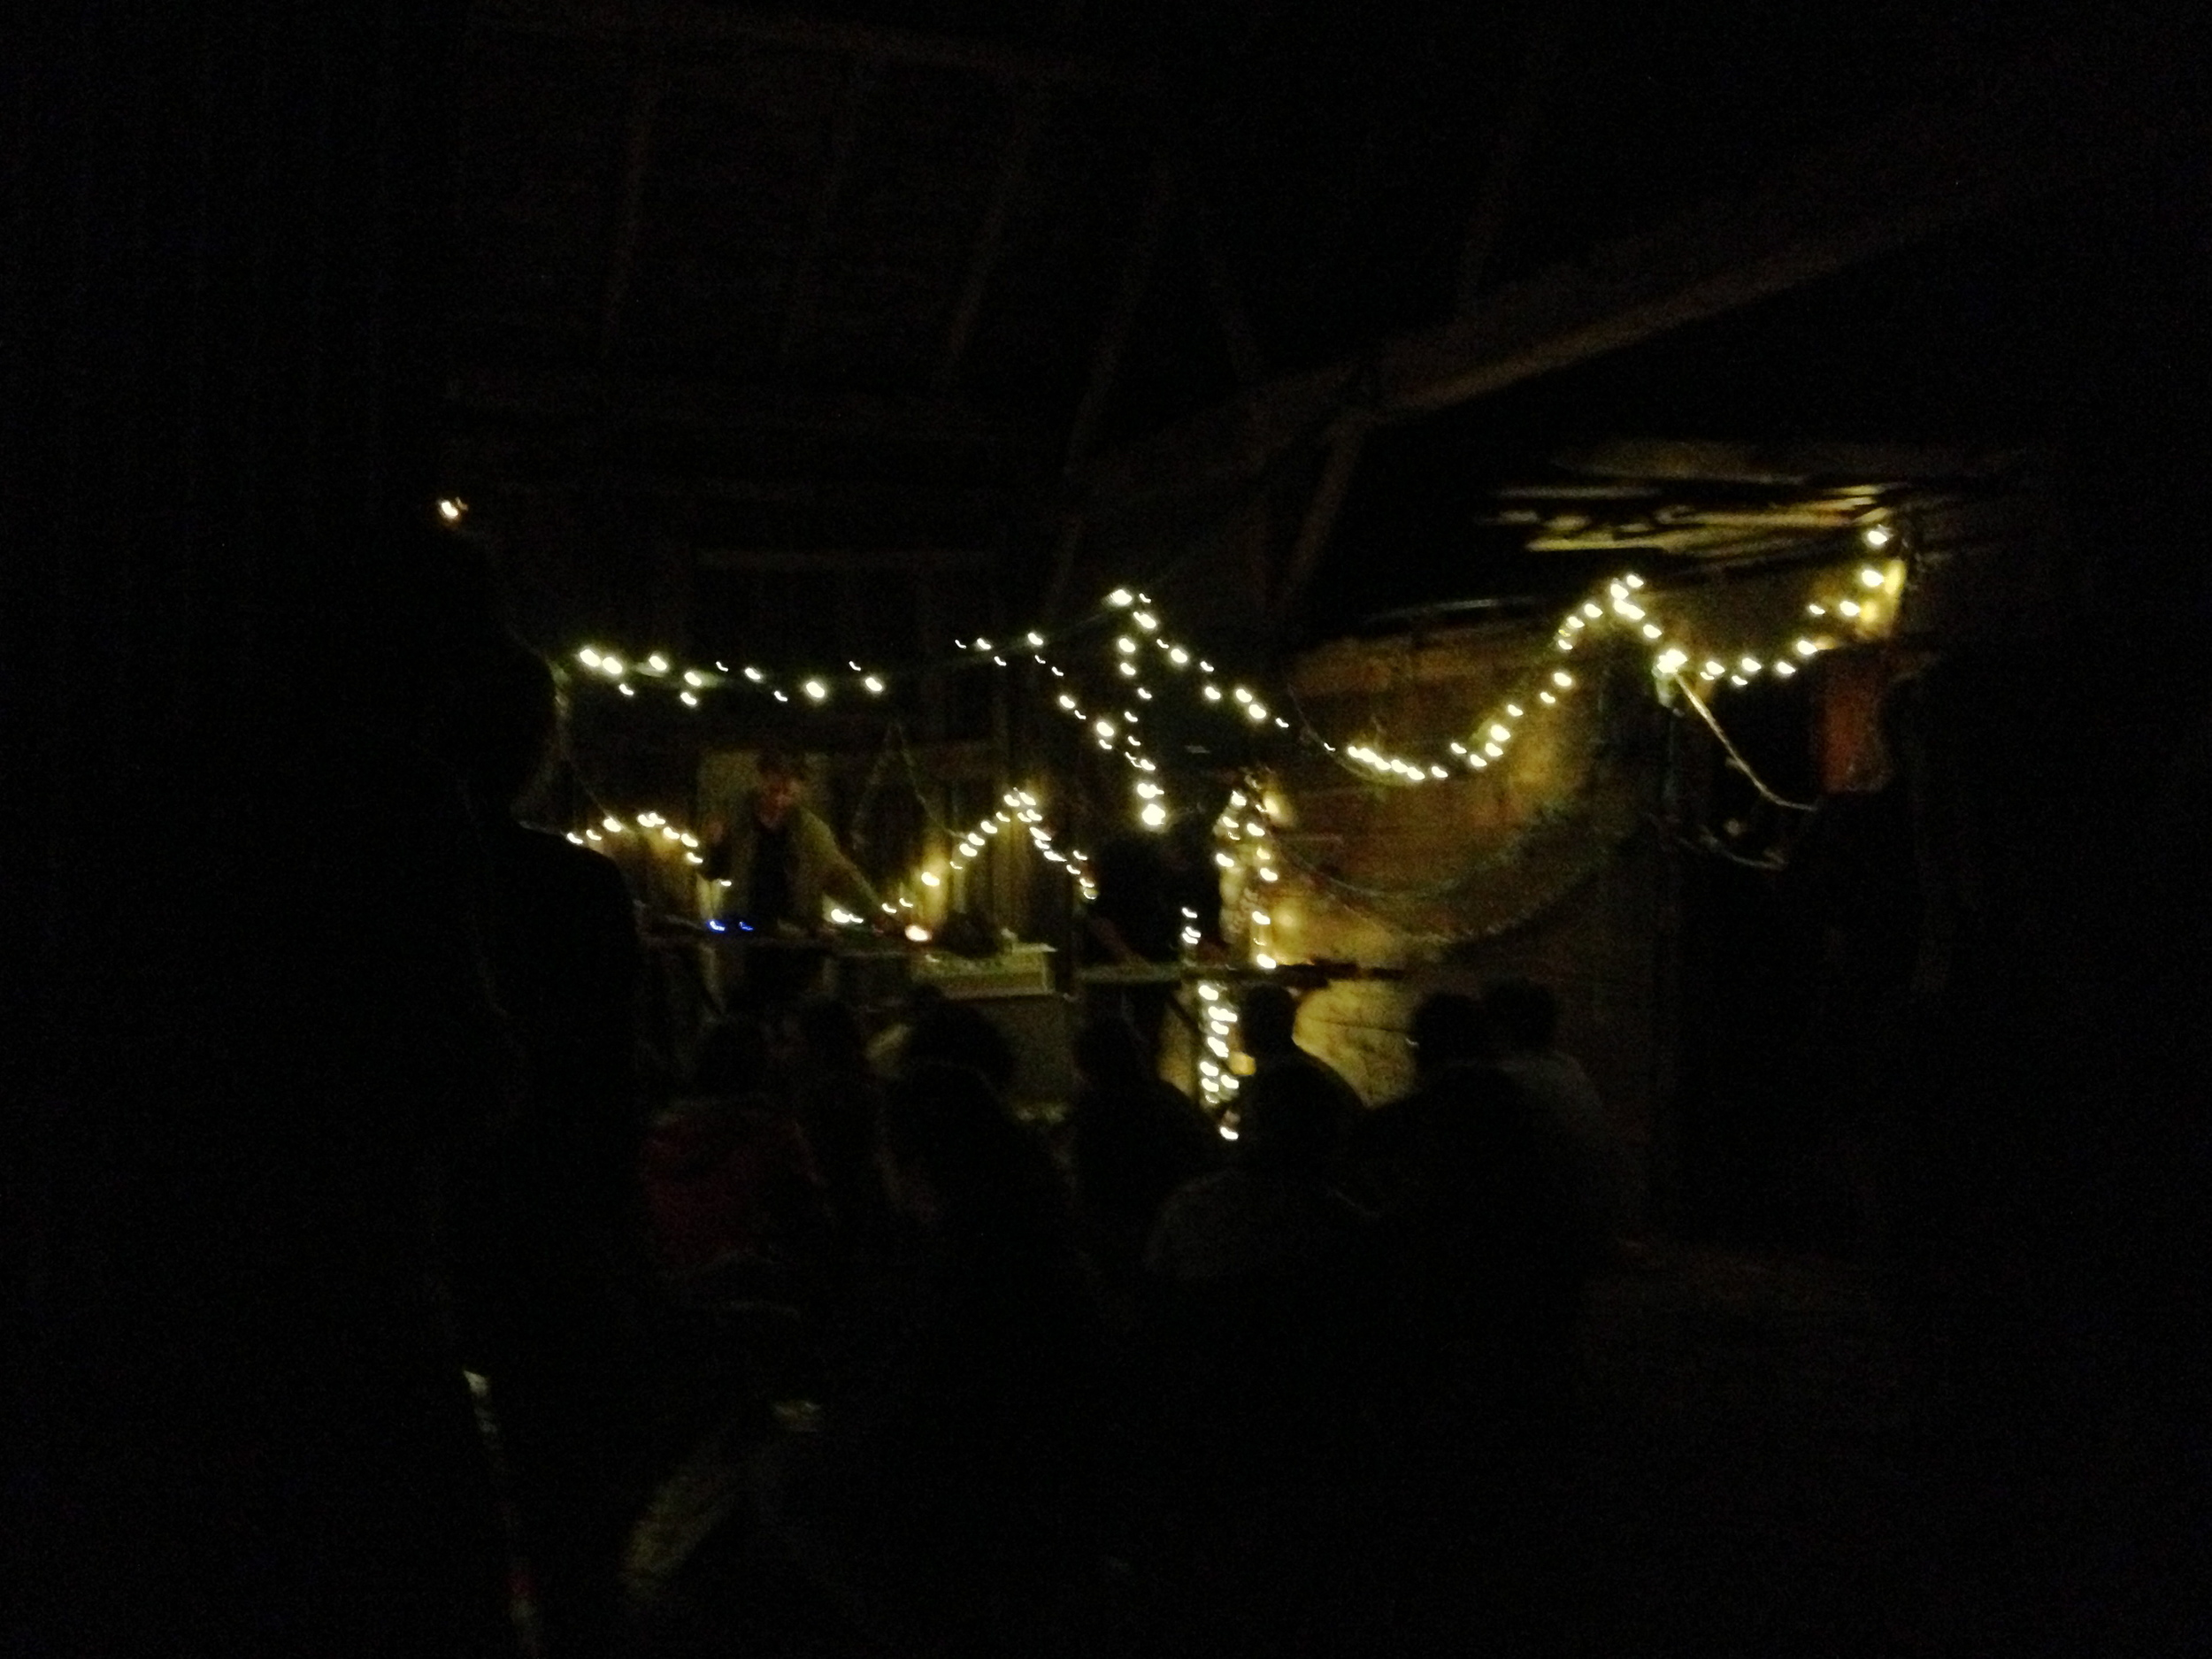 Although it was already pretty late, the shortest night of the year was just beginning! We caravanned back to Mace Chasm Farm where we set up our tents in a far field in the pitch black before coming back to the barn for some electronic music.